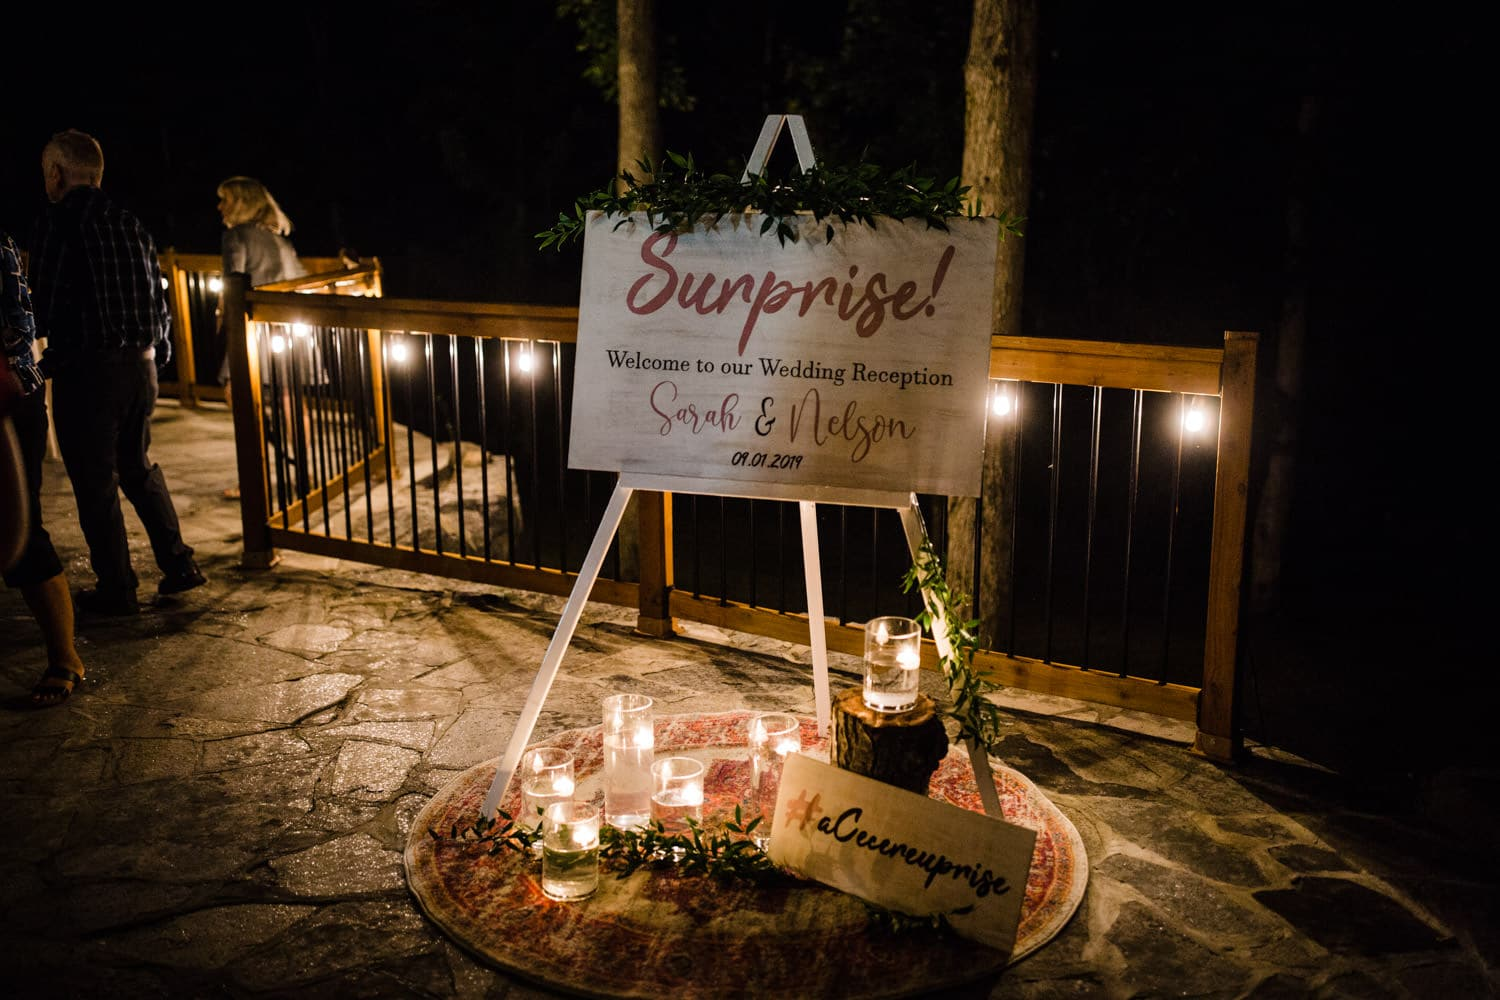 welcome to our surprise wedding sign lit by candles